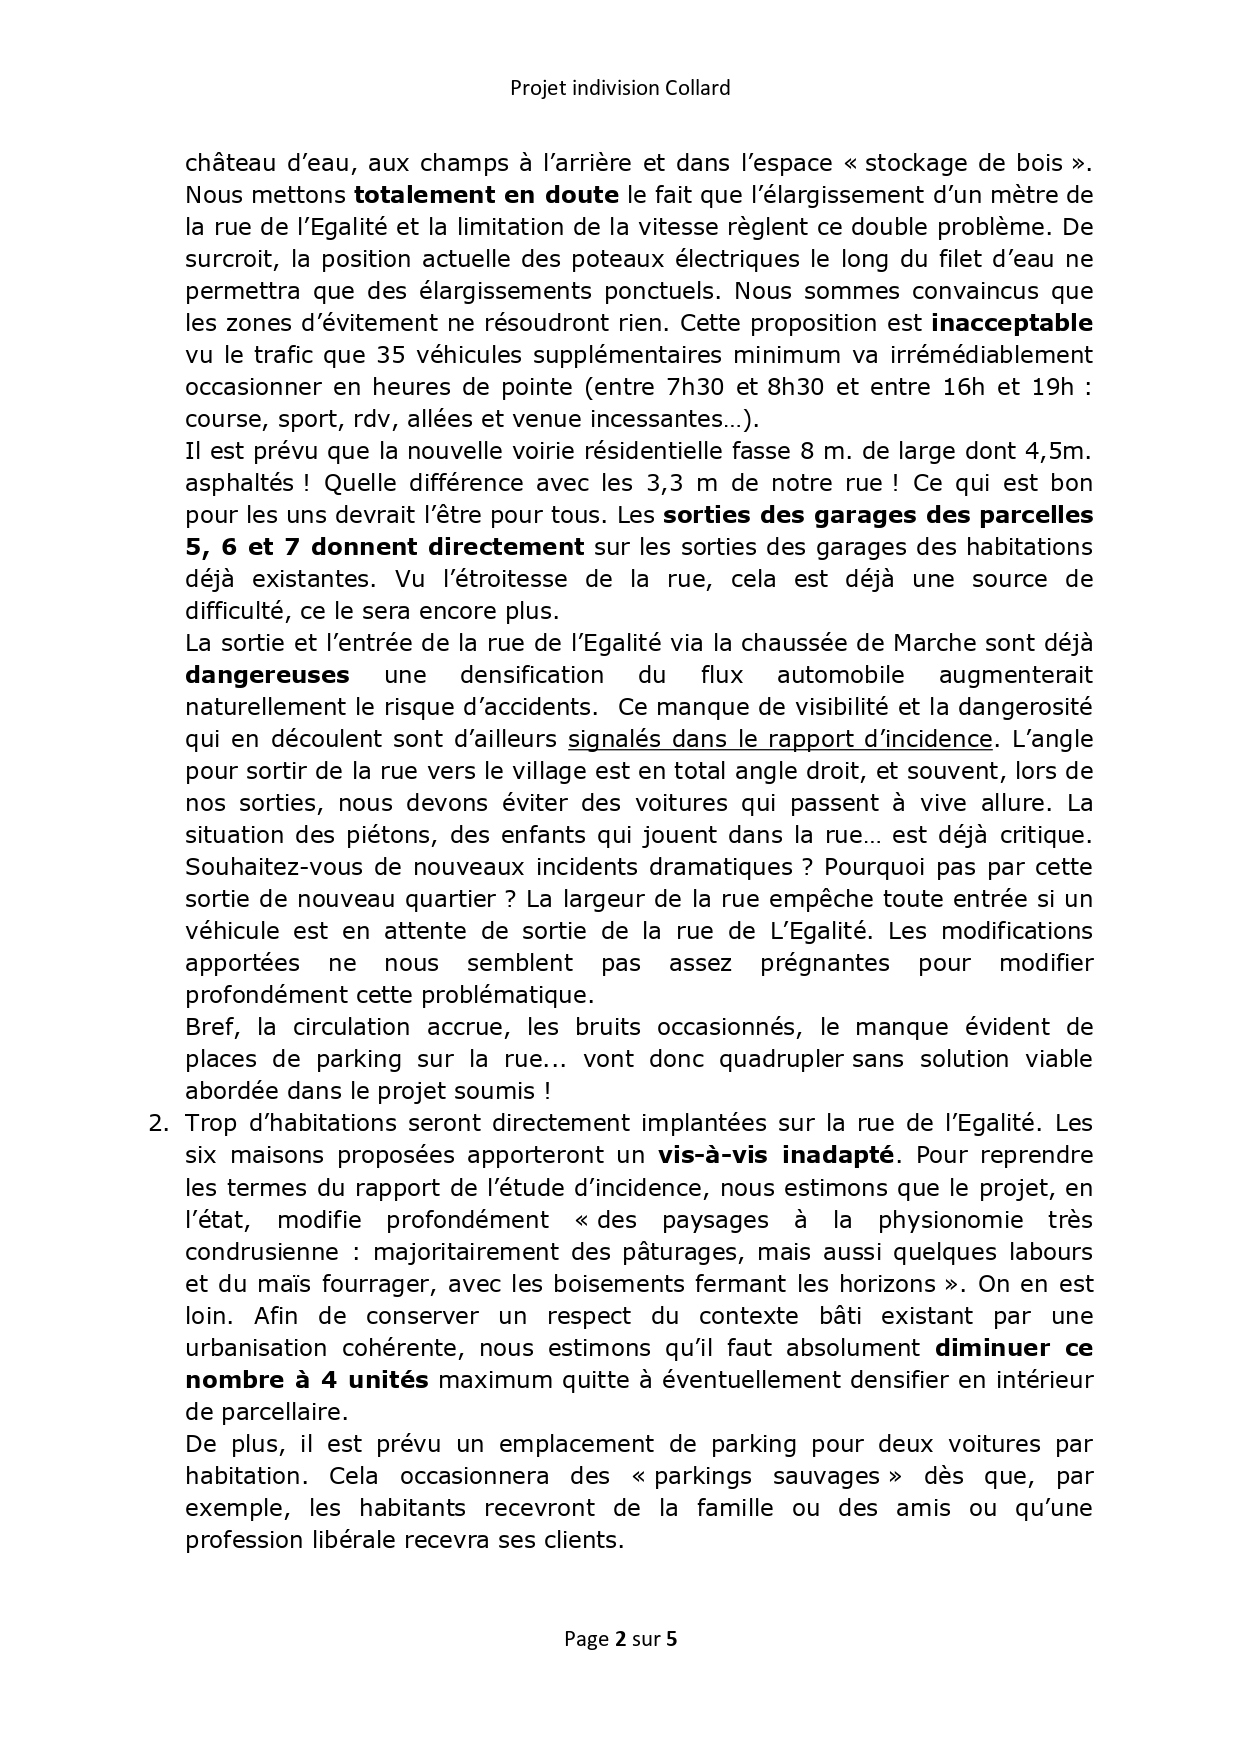 indivision_Collard_juin_2020_VERSION_DEFINITIVE_page-00021.jpg